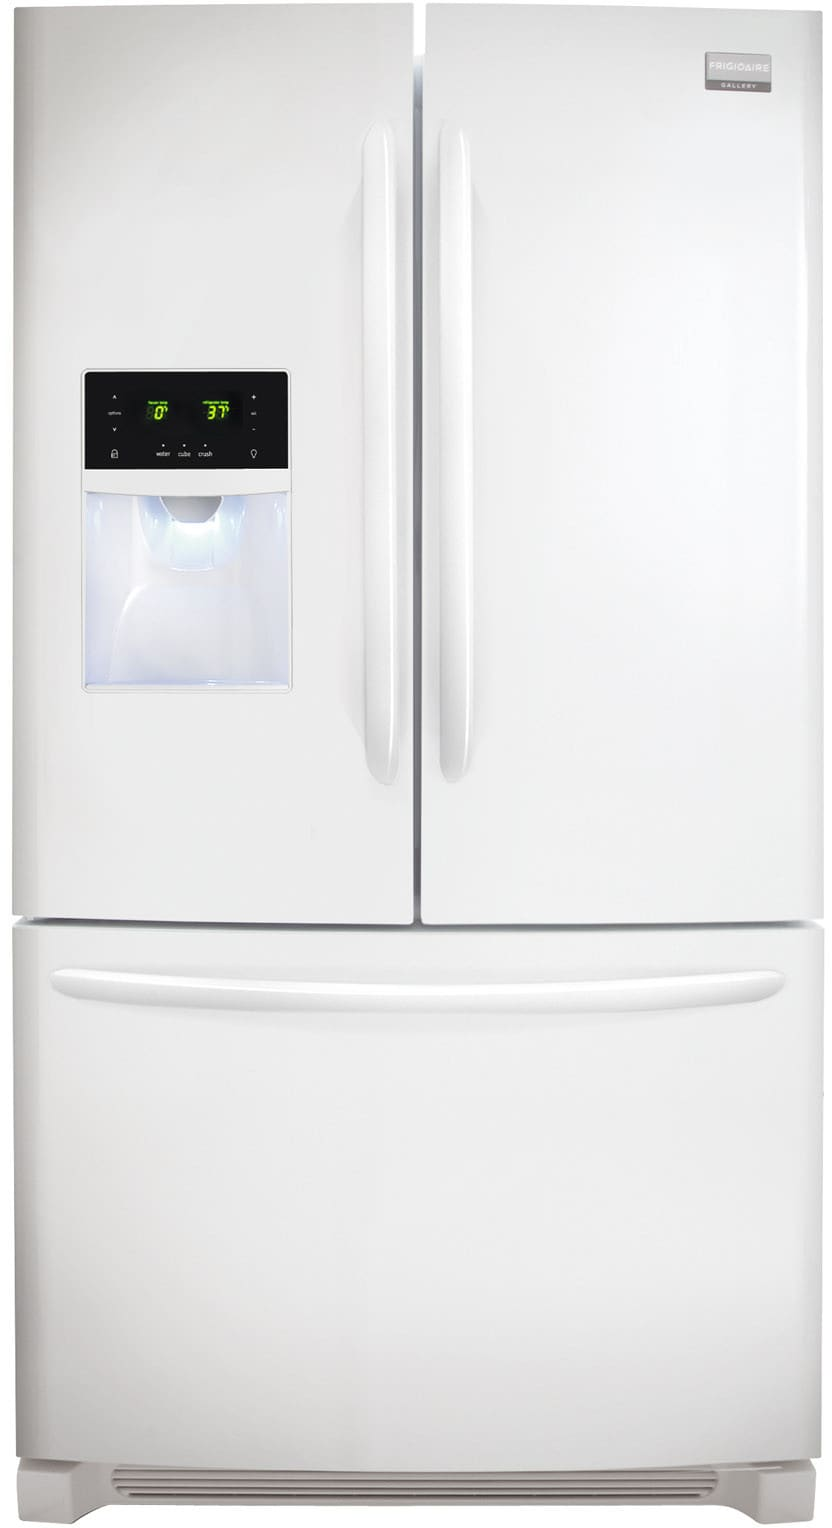 Frigidaire FGHB2866PP 36 Inch French Door Refrigerator with Cool Zone  Drawer, Quick Freeze, Energy Star, 27.8 cu. ft Capacity, Adjustable  SpillSafe Shelves, ...